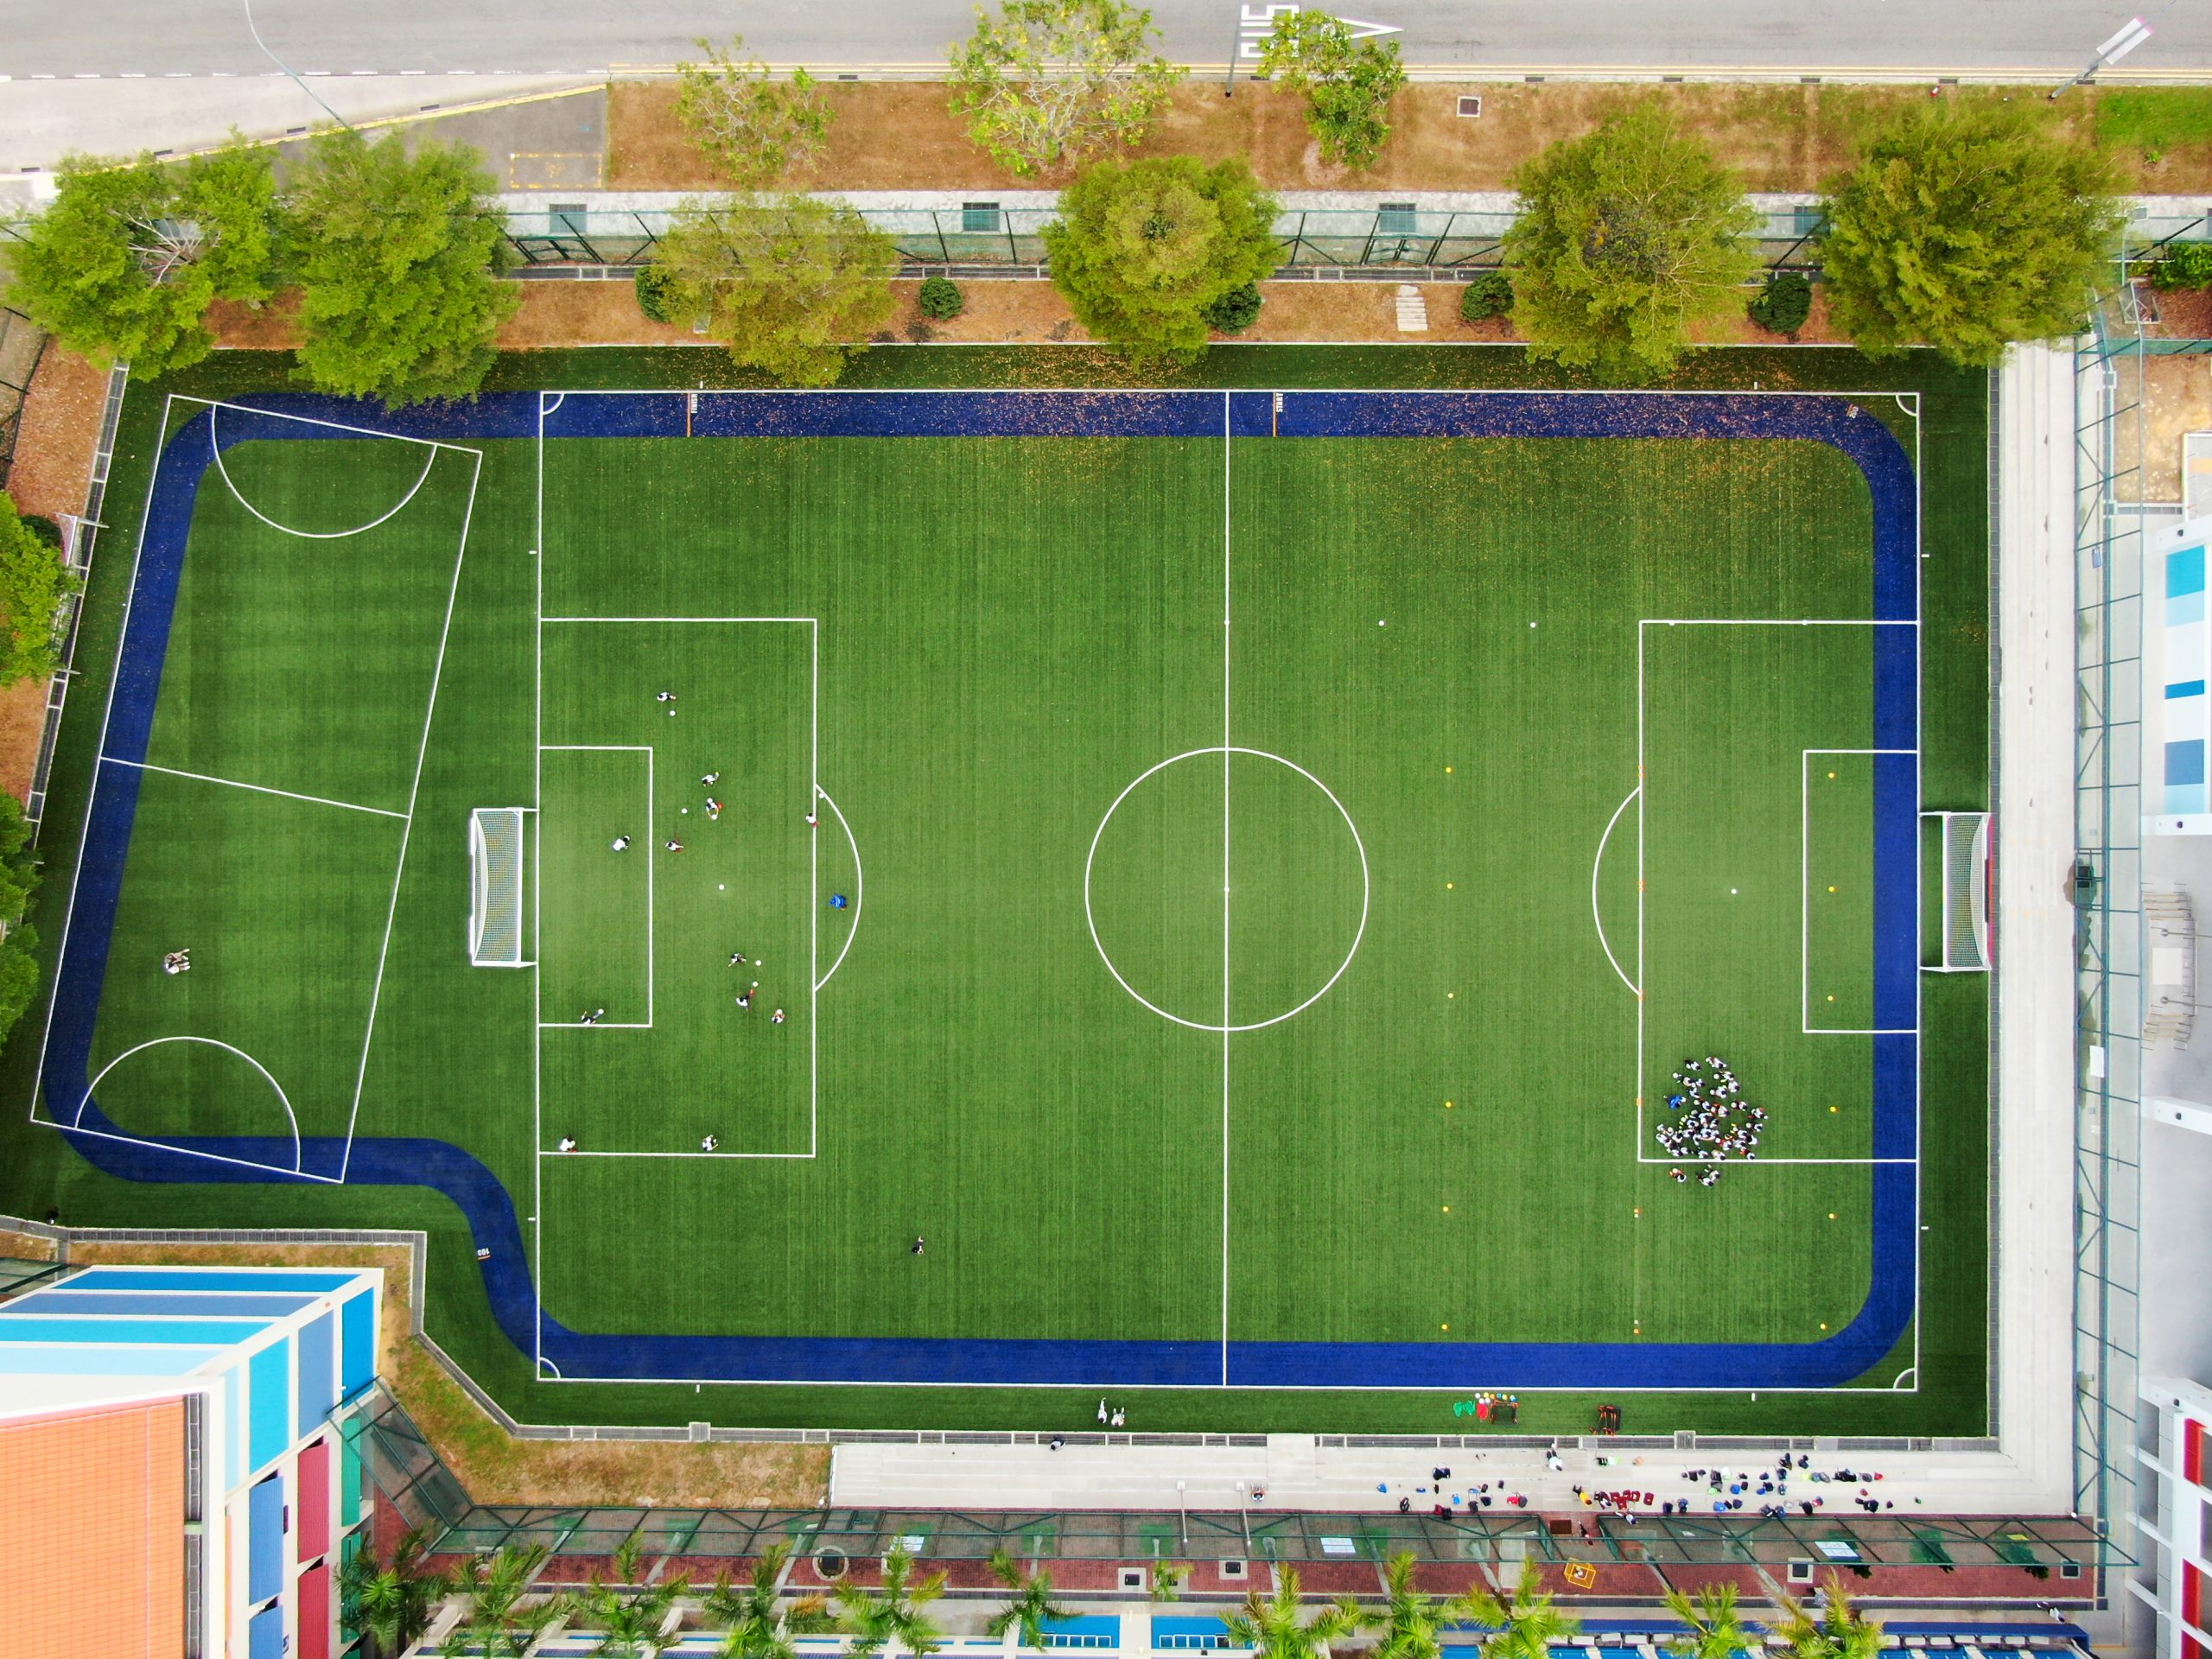 Singapore sports field, artificial grass, ccgrass